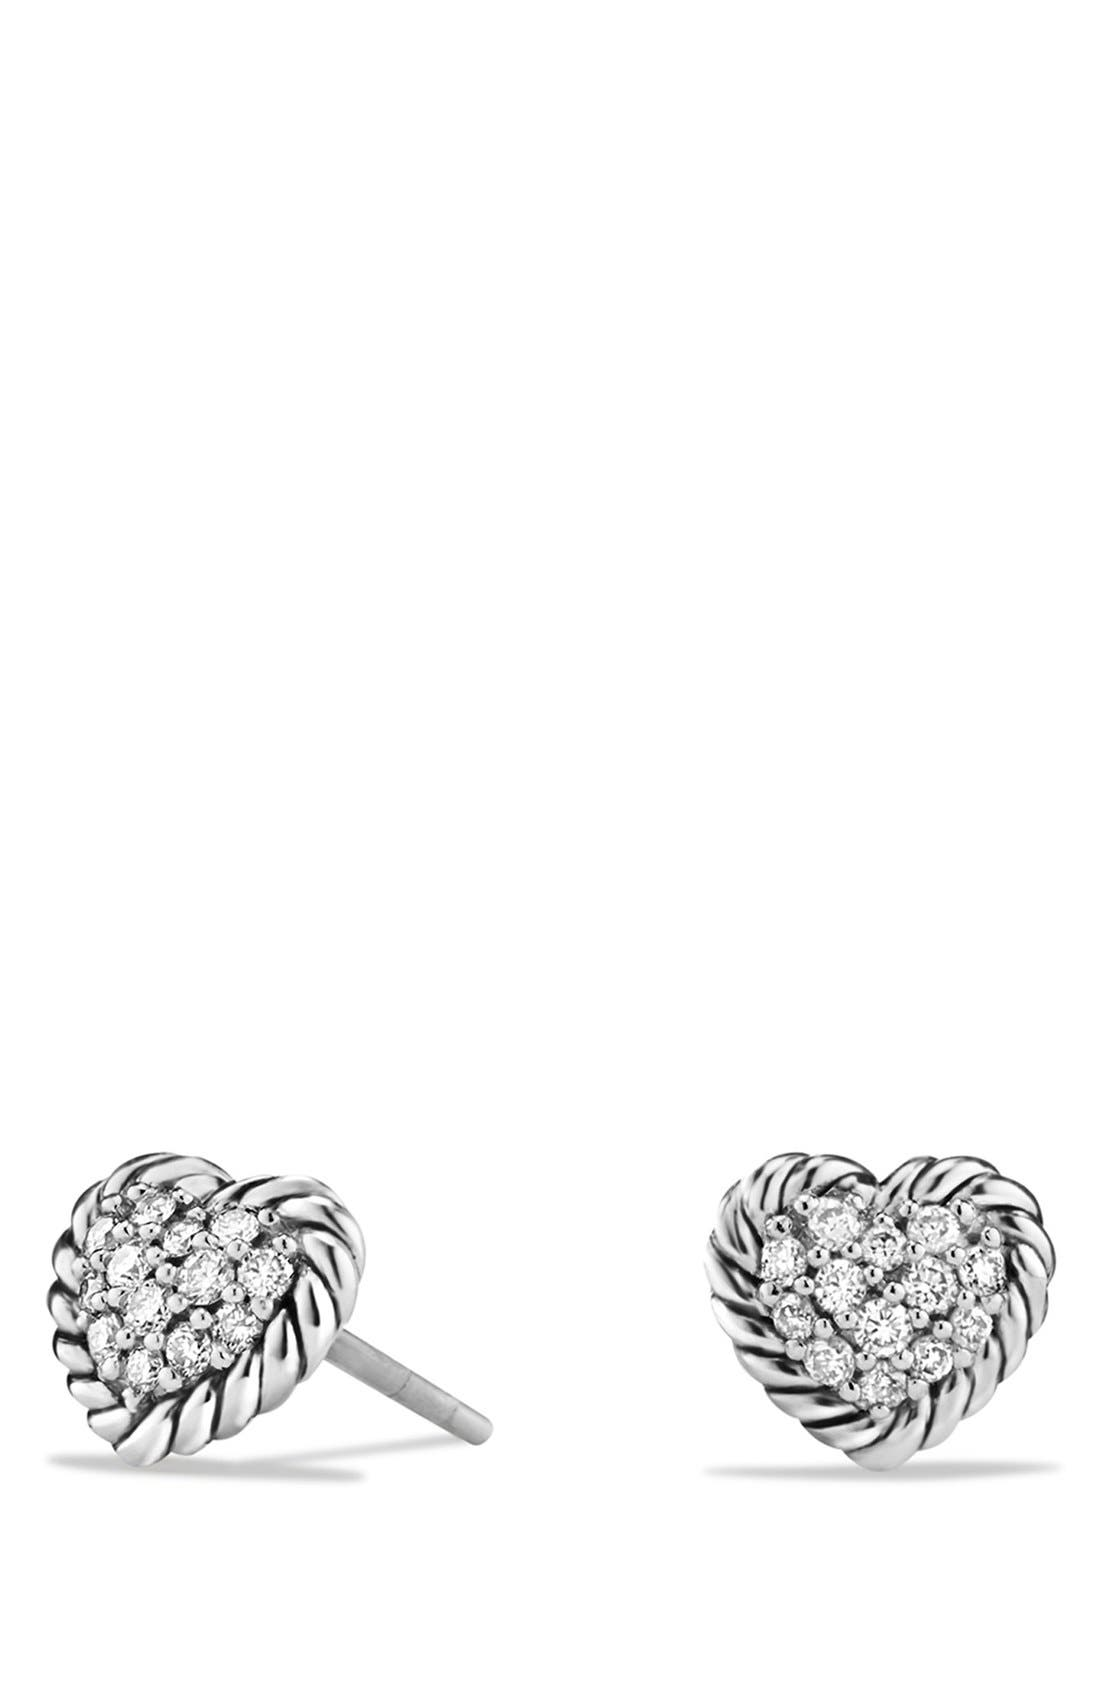 DAVID YURMAN Châtelaine Heart Earrings with Diamonds